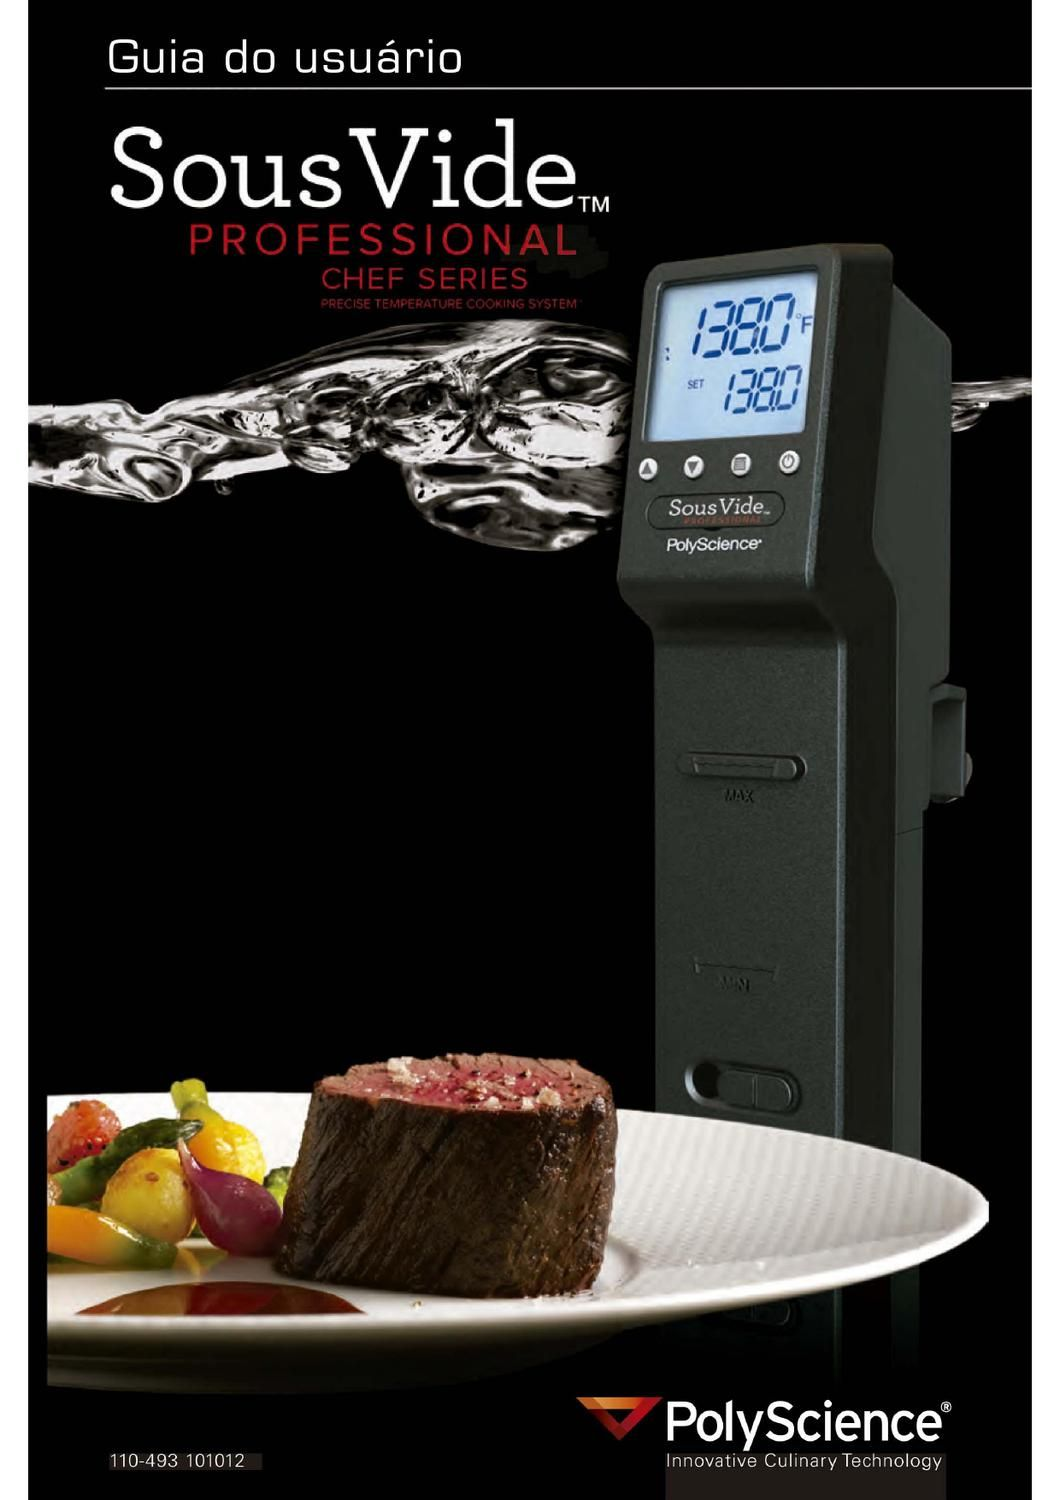 manual sous vide professional chef series sous vide and rh pinterest com Dedos Em Portugues Dedos Em Portugues